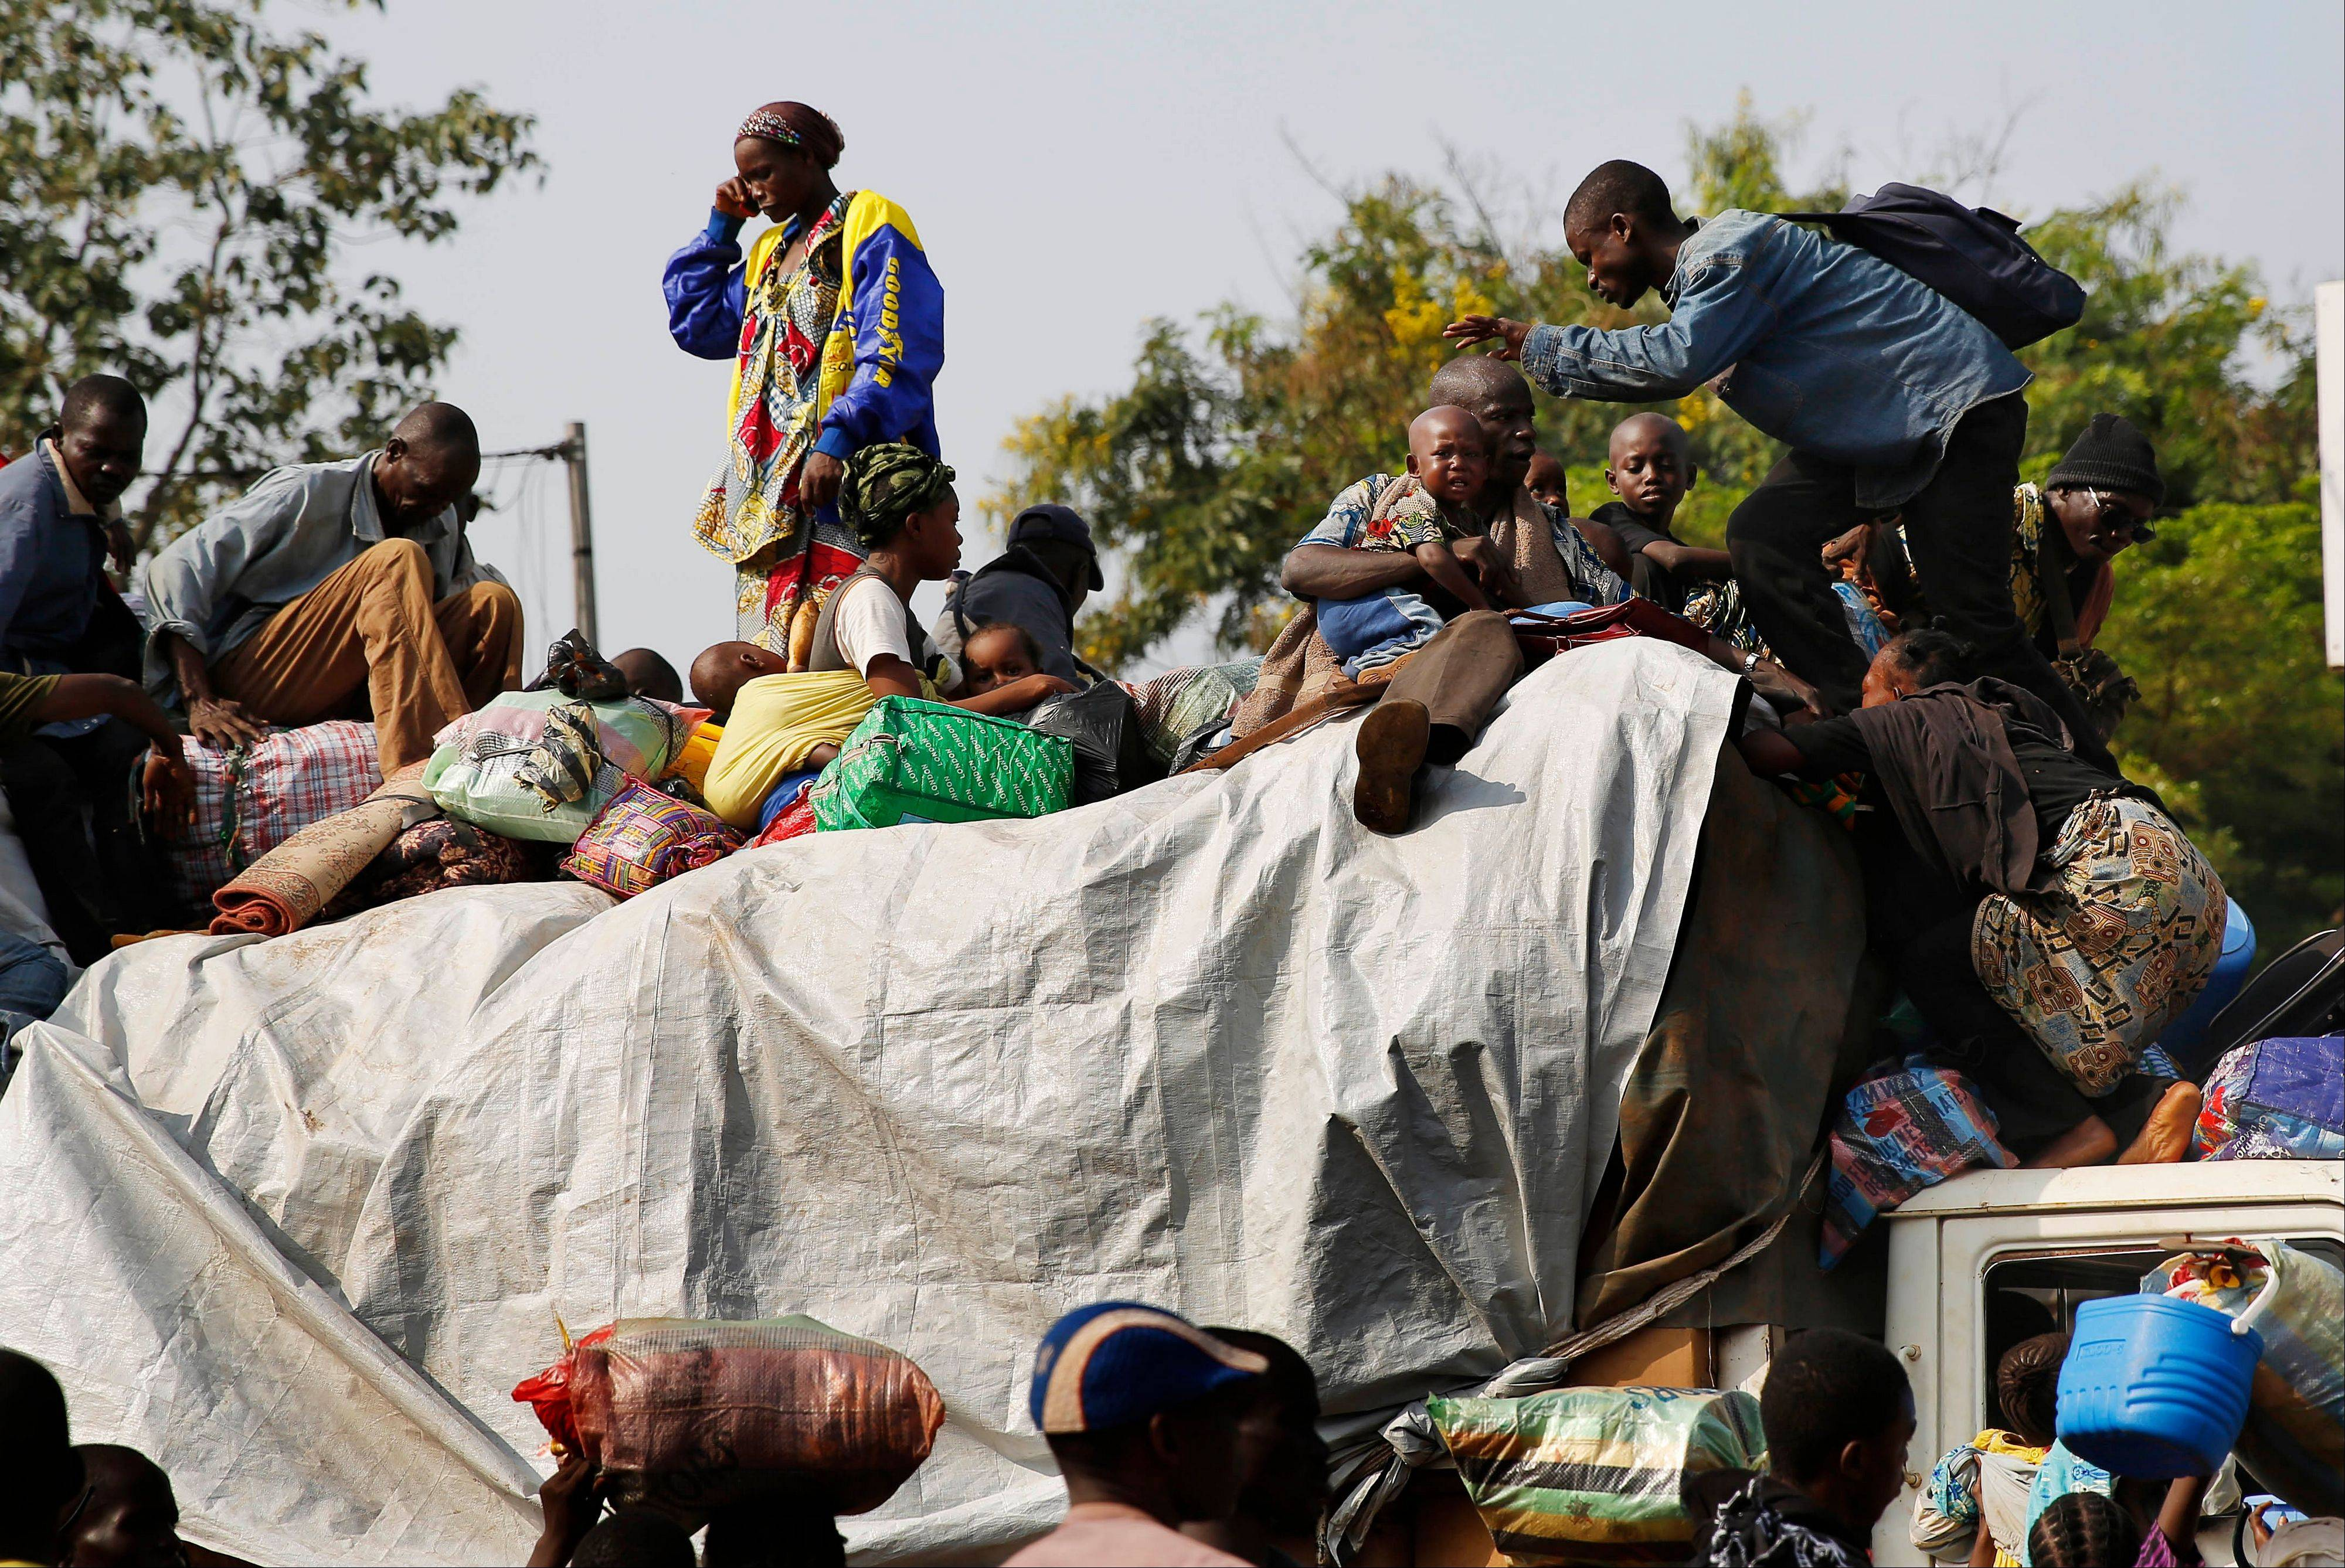 At PK12, the last checkpoint at the exit of the town, thousands of Muslim residents flee from Bangui and Mbaiki.